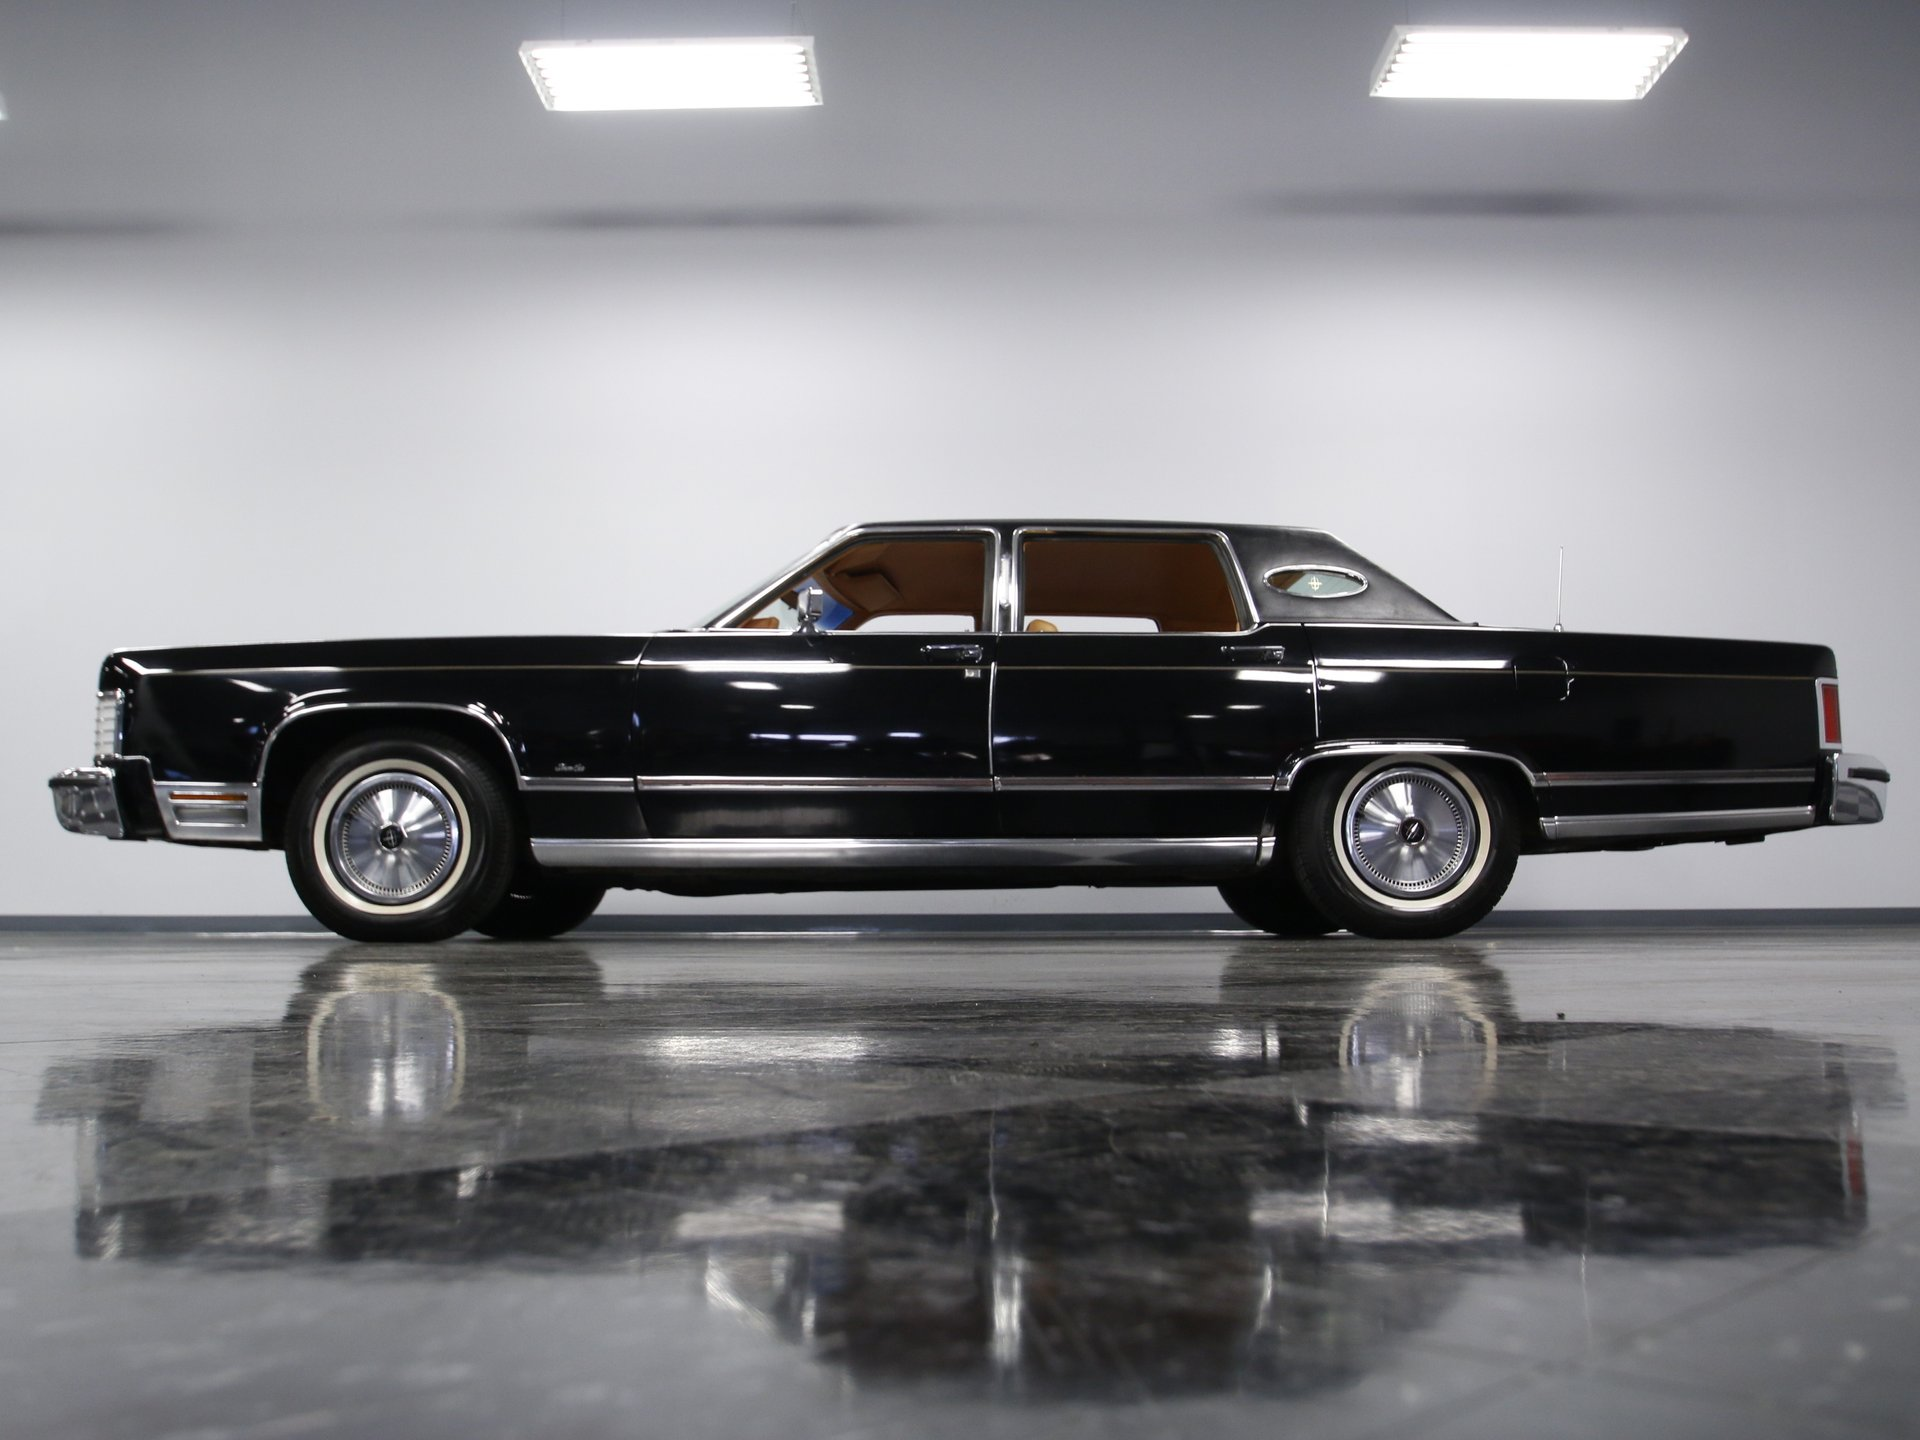 1978 Lincoln Continental Streetside Classics The Nation S